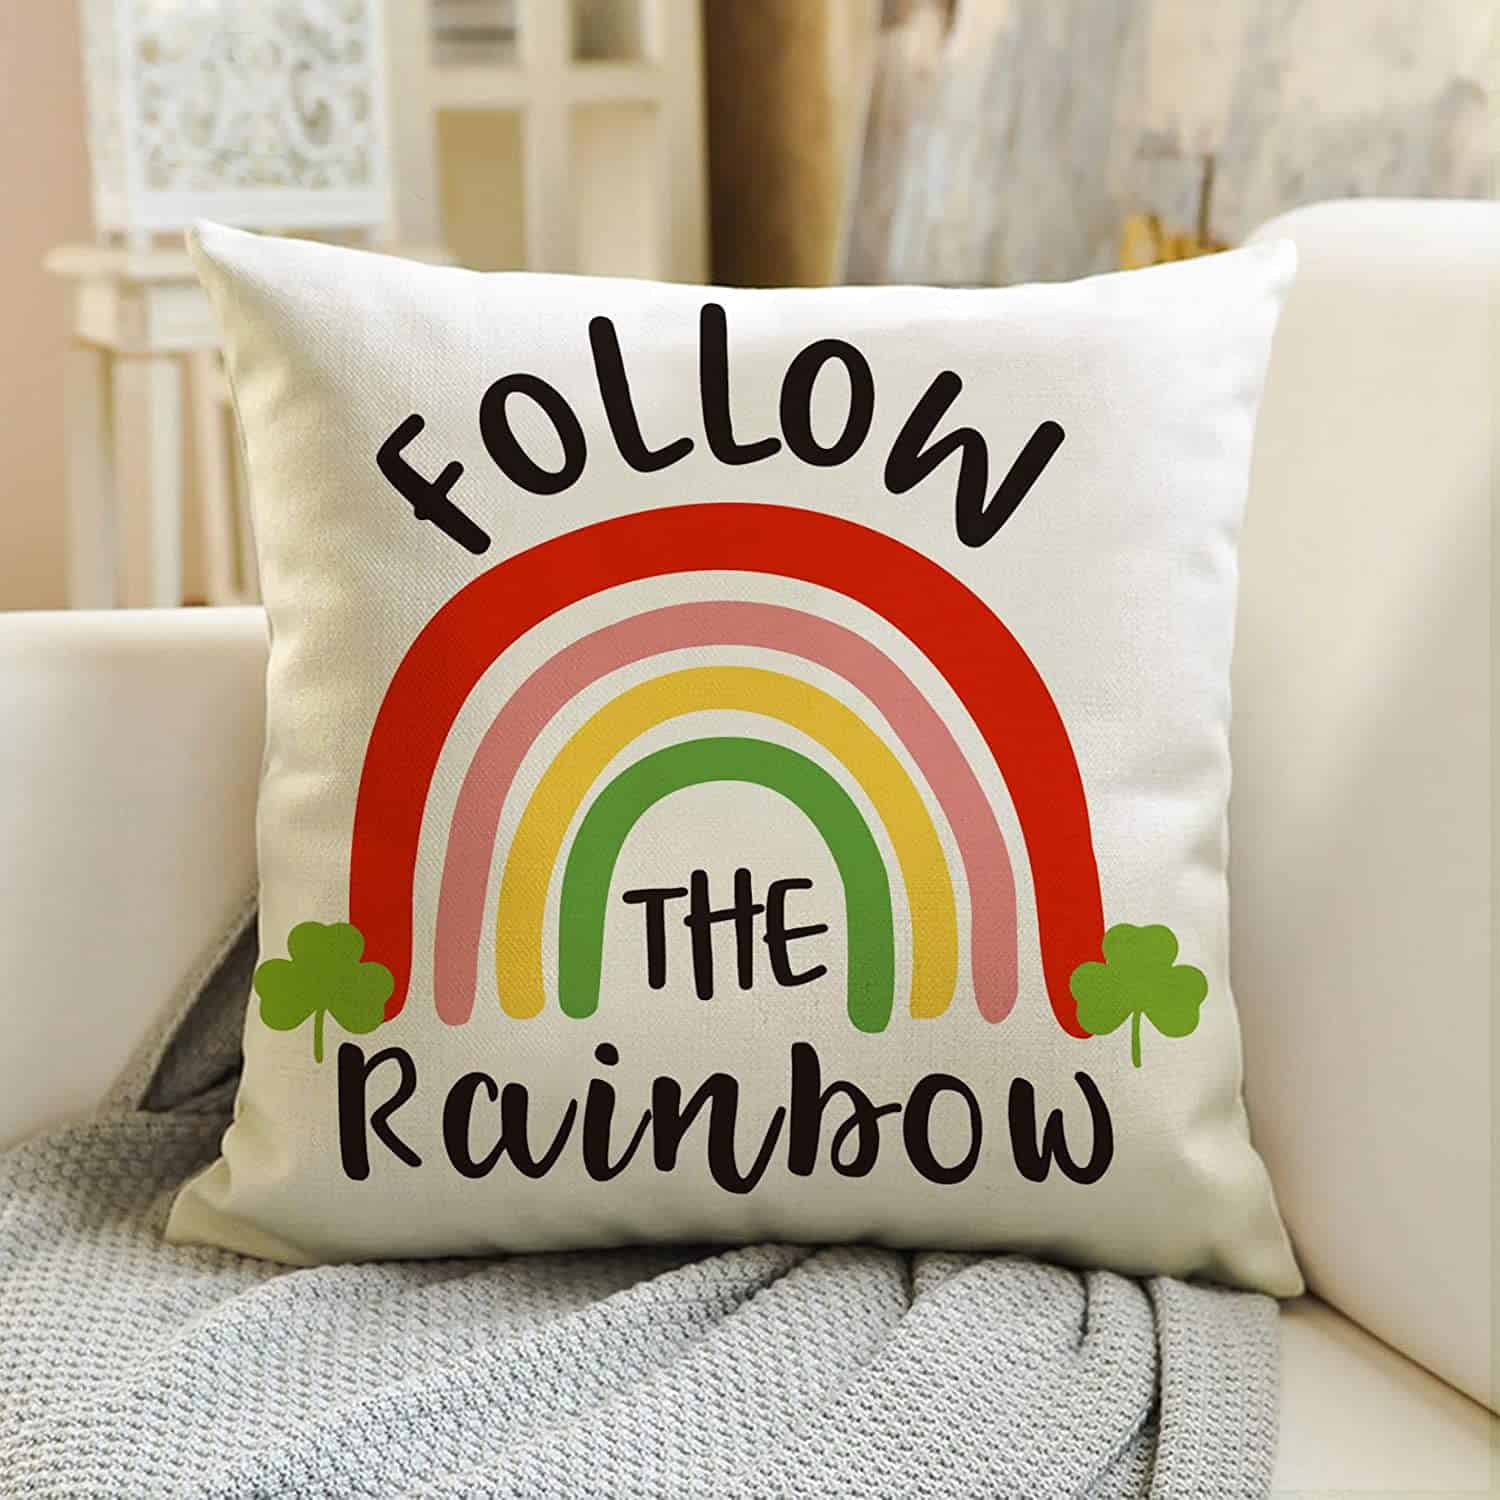 pillow cover with rainbow on it